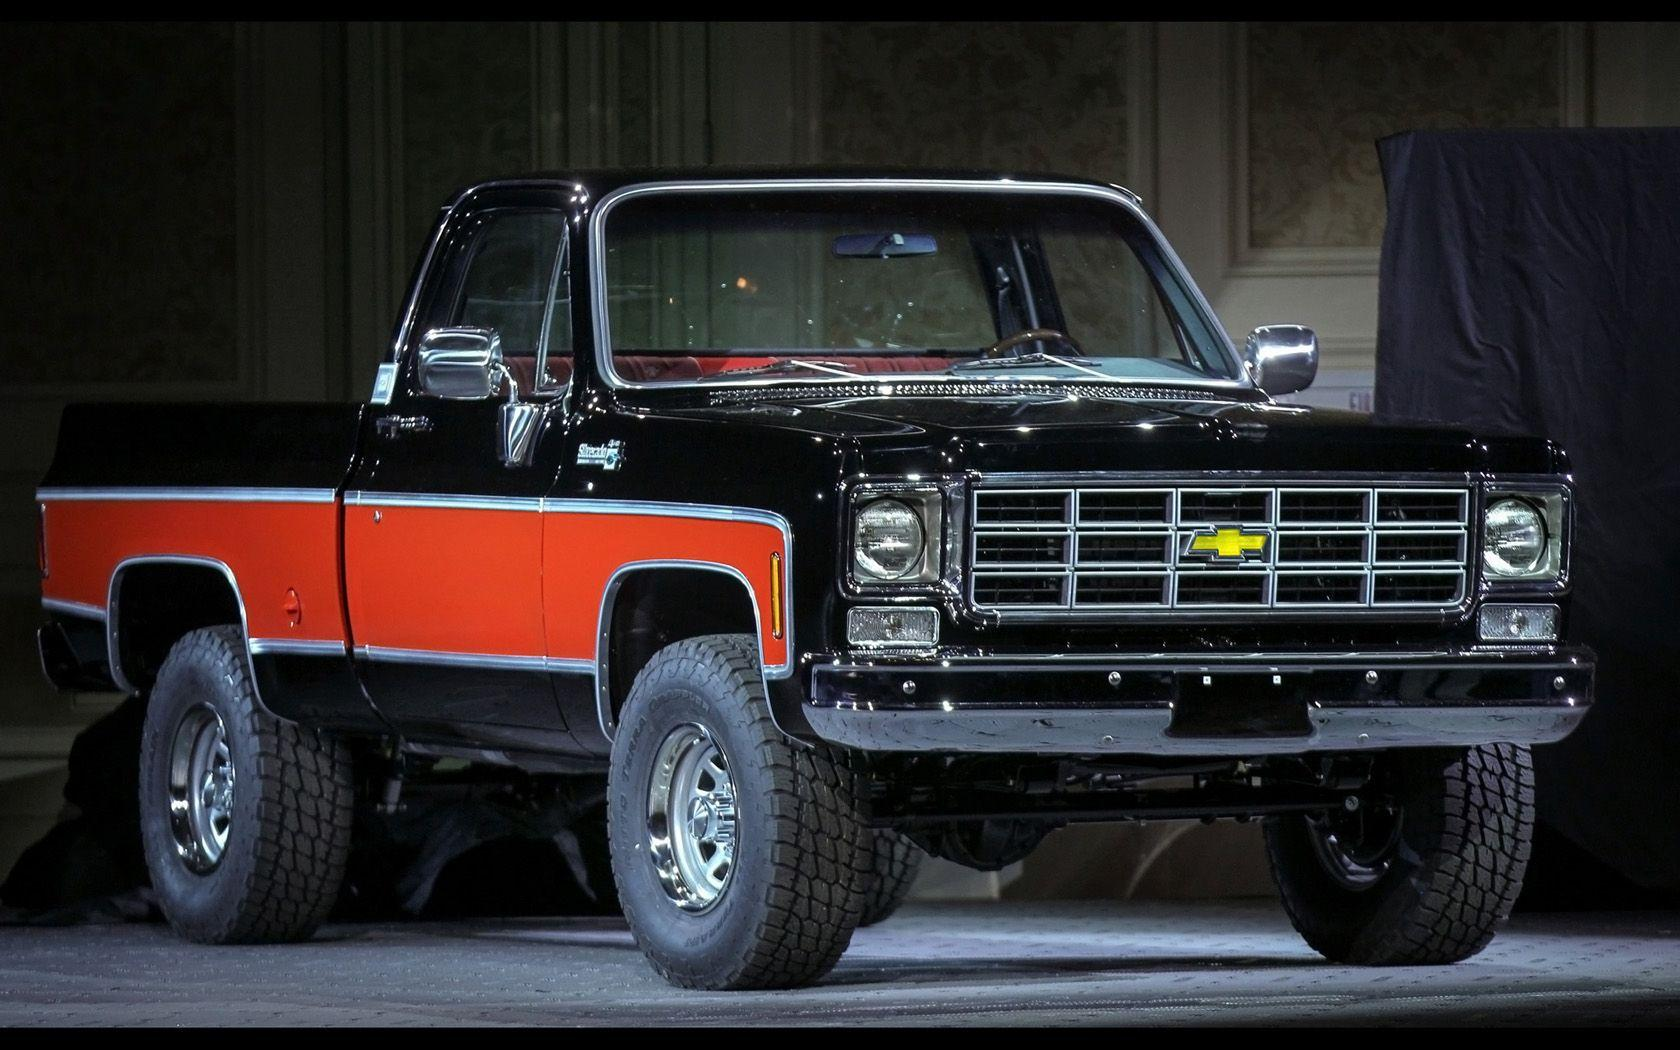 Chevy Trucks Wallpapers - Wallpaper Cave